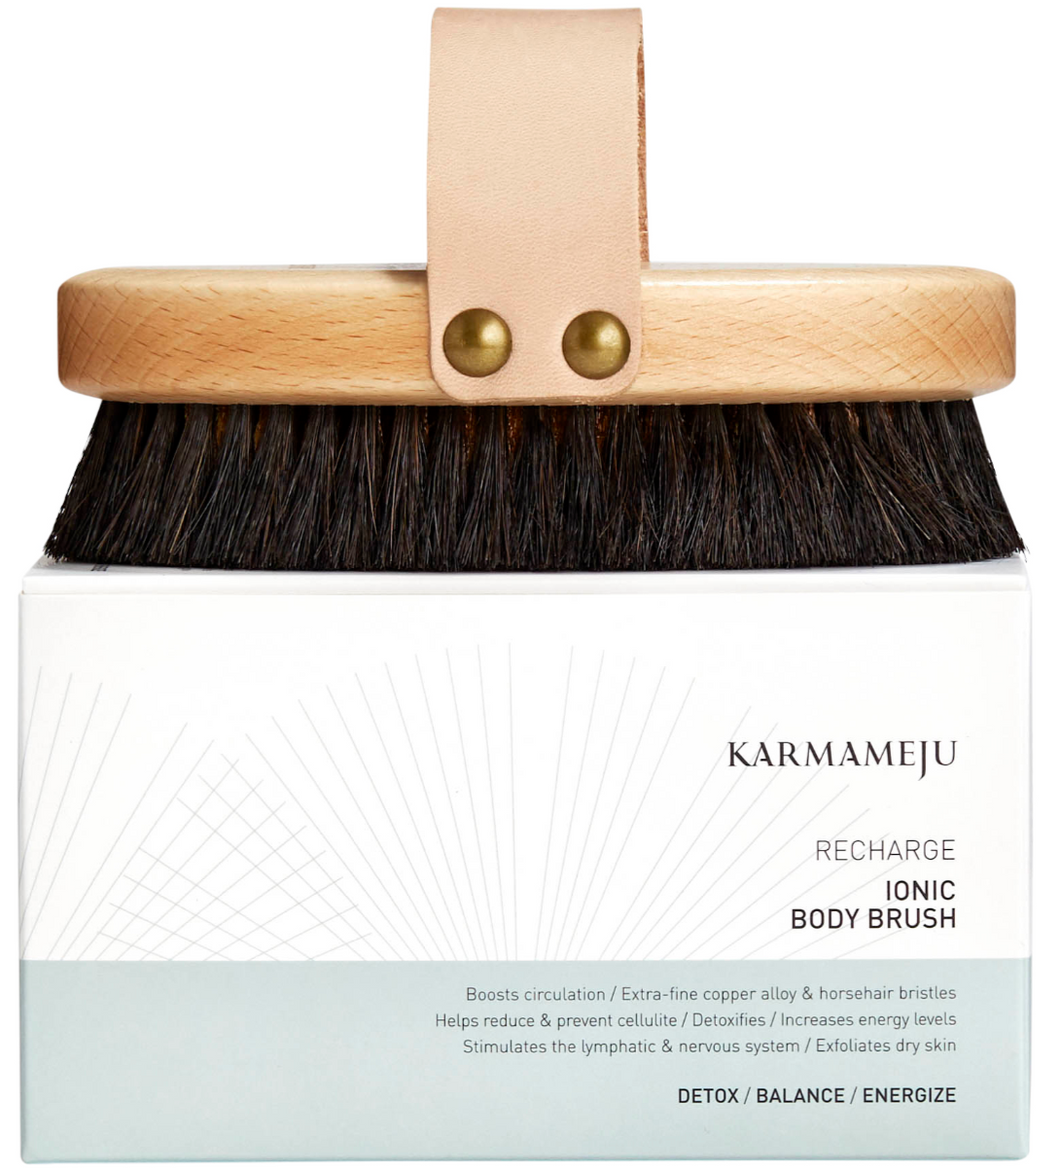 [去背部暗粒有計]KARMAMEJU Ionic Body Brush 離子嫩膚刷 - buy European skincare in Hong Kong - 1click2beauty